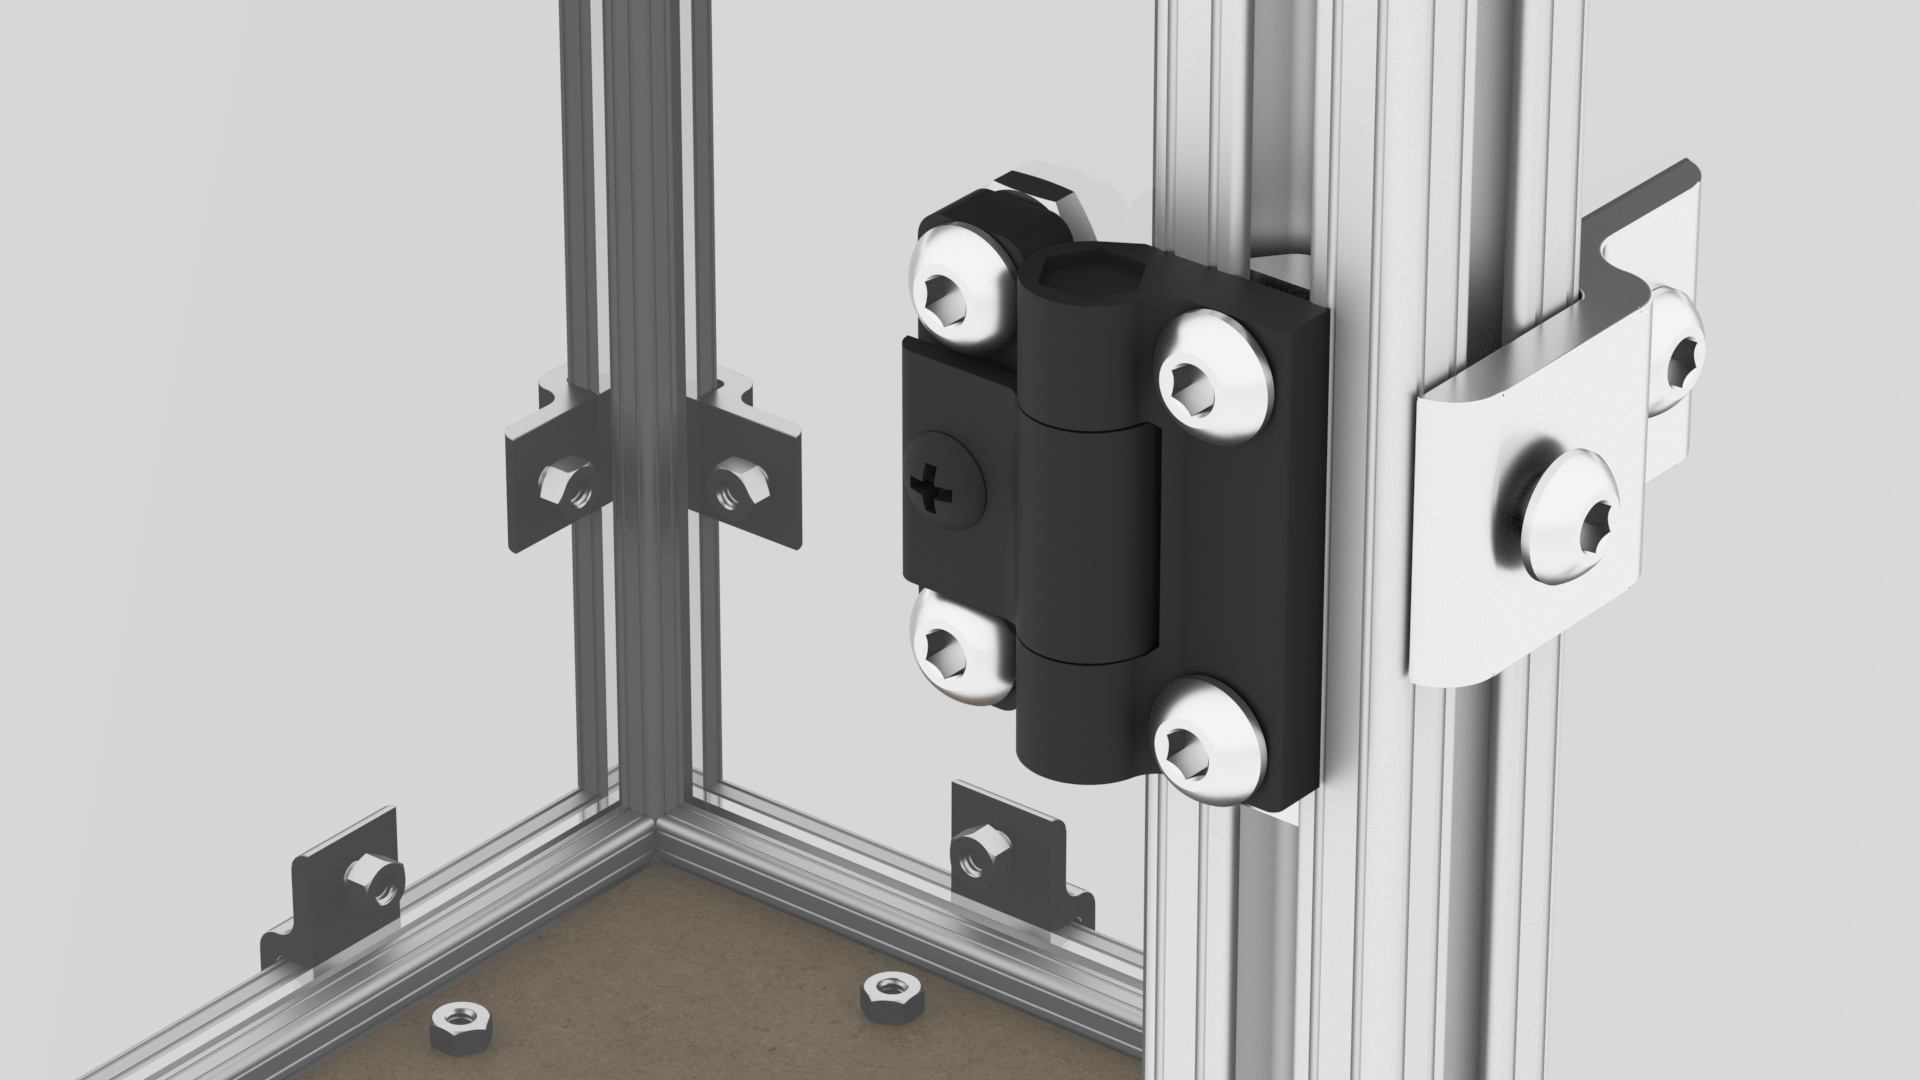 Install the hinges to the front of the frame. At this point you can slide the fastener hardware in from the top.